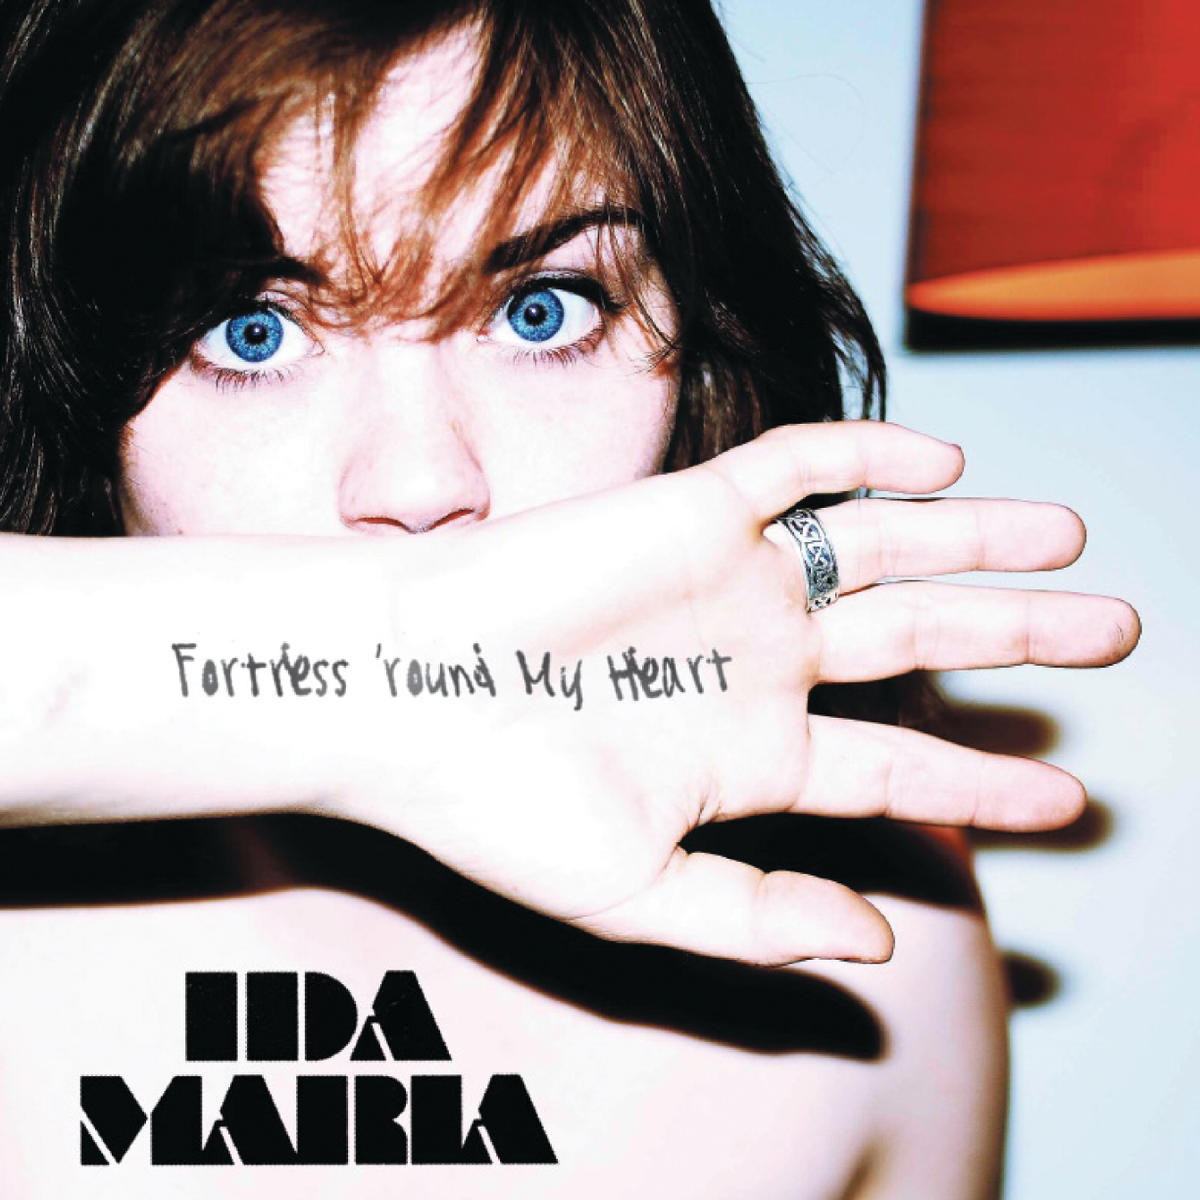 Ida maria i like you so much better when you're naked